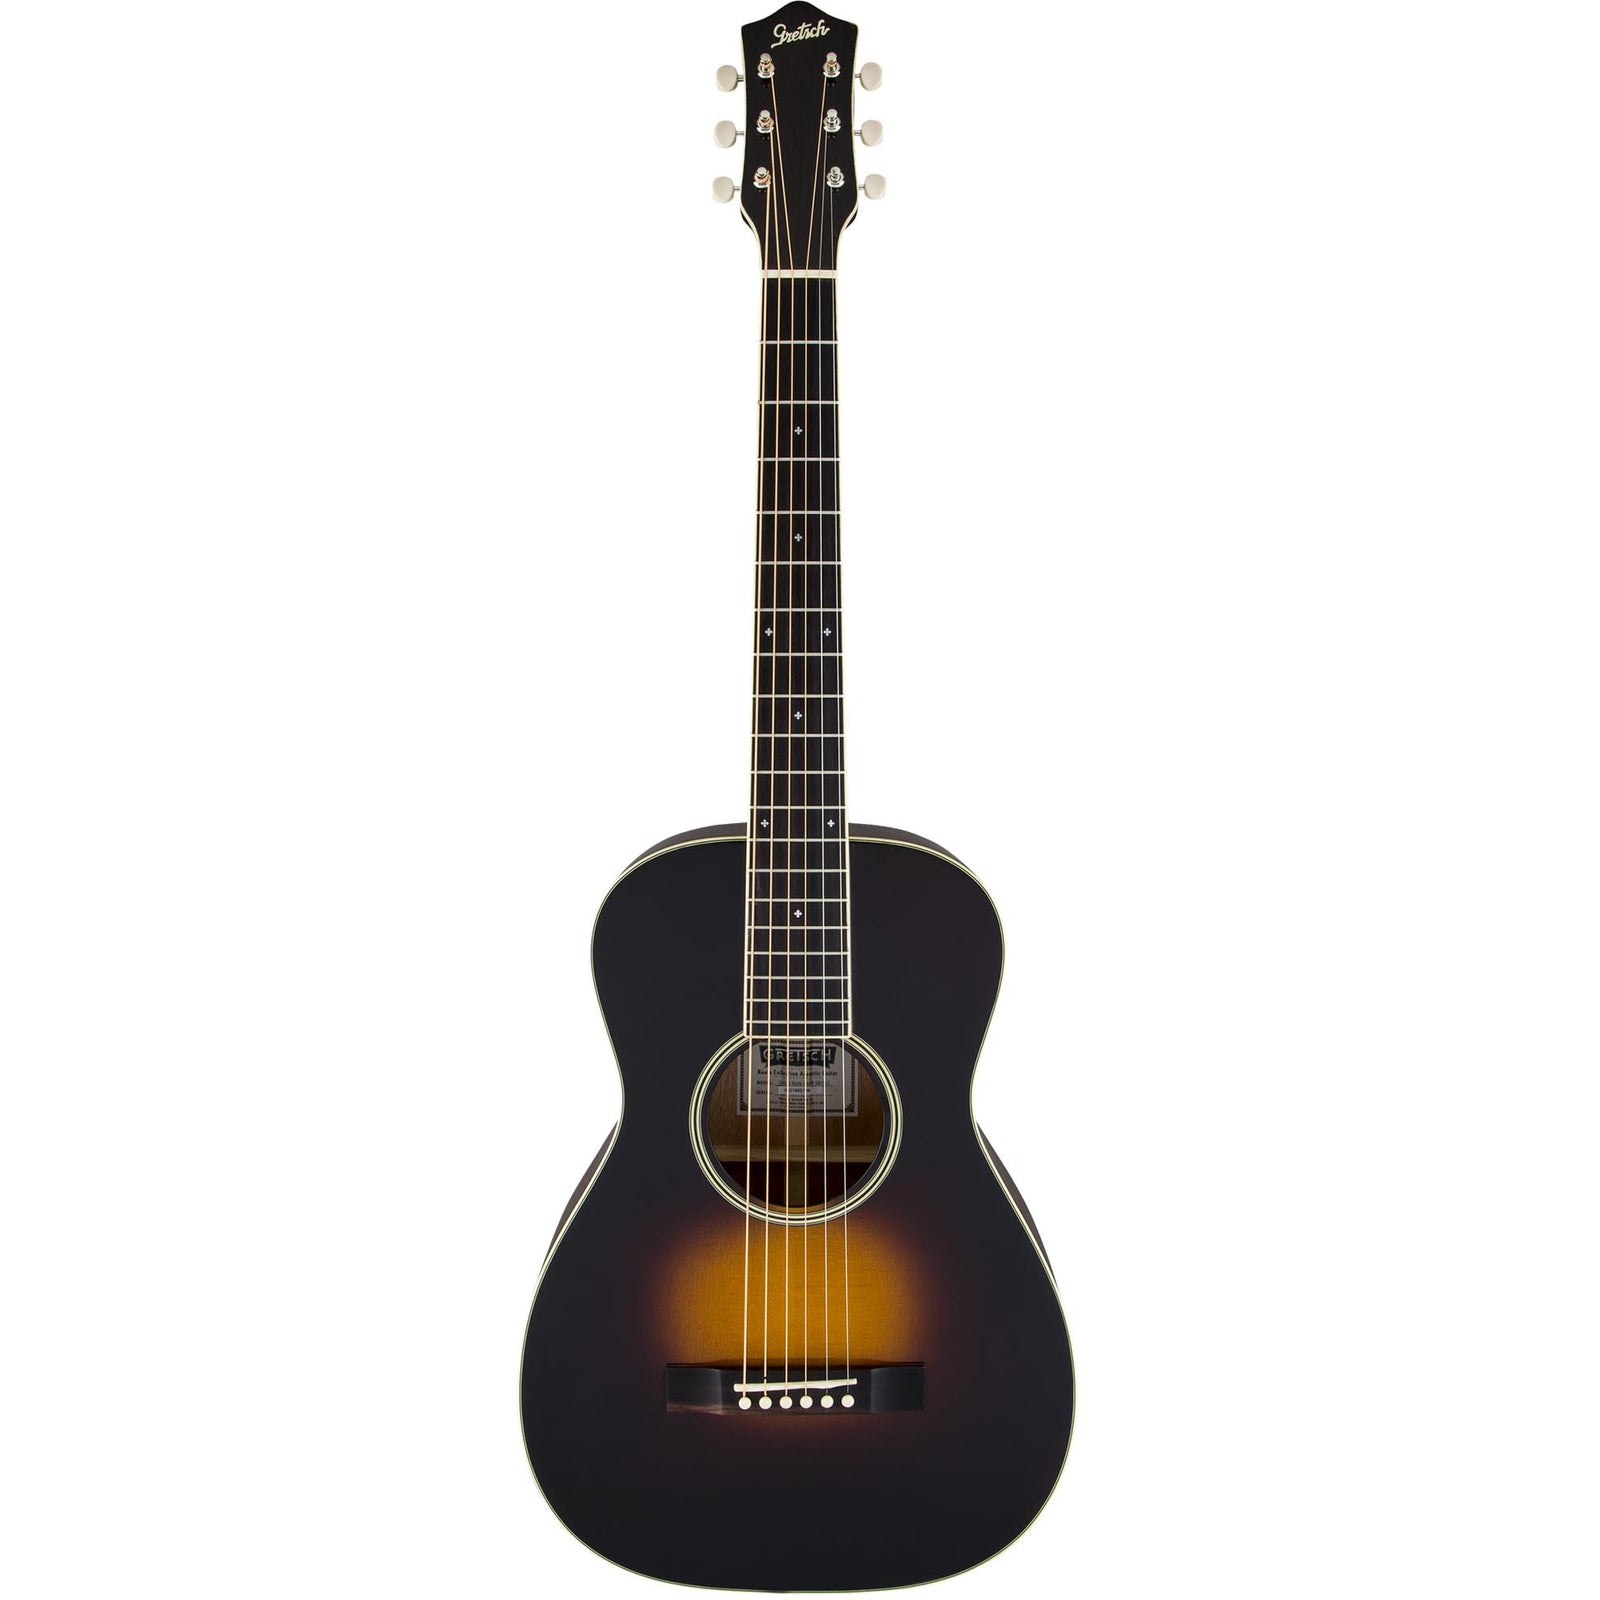 Gretsch G9511 Style 1 Single-0 Parlor Acoustic Guitar - Appalachia Cloudburst